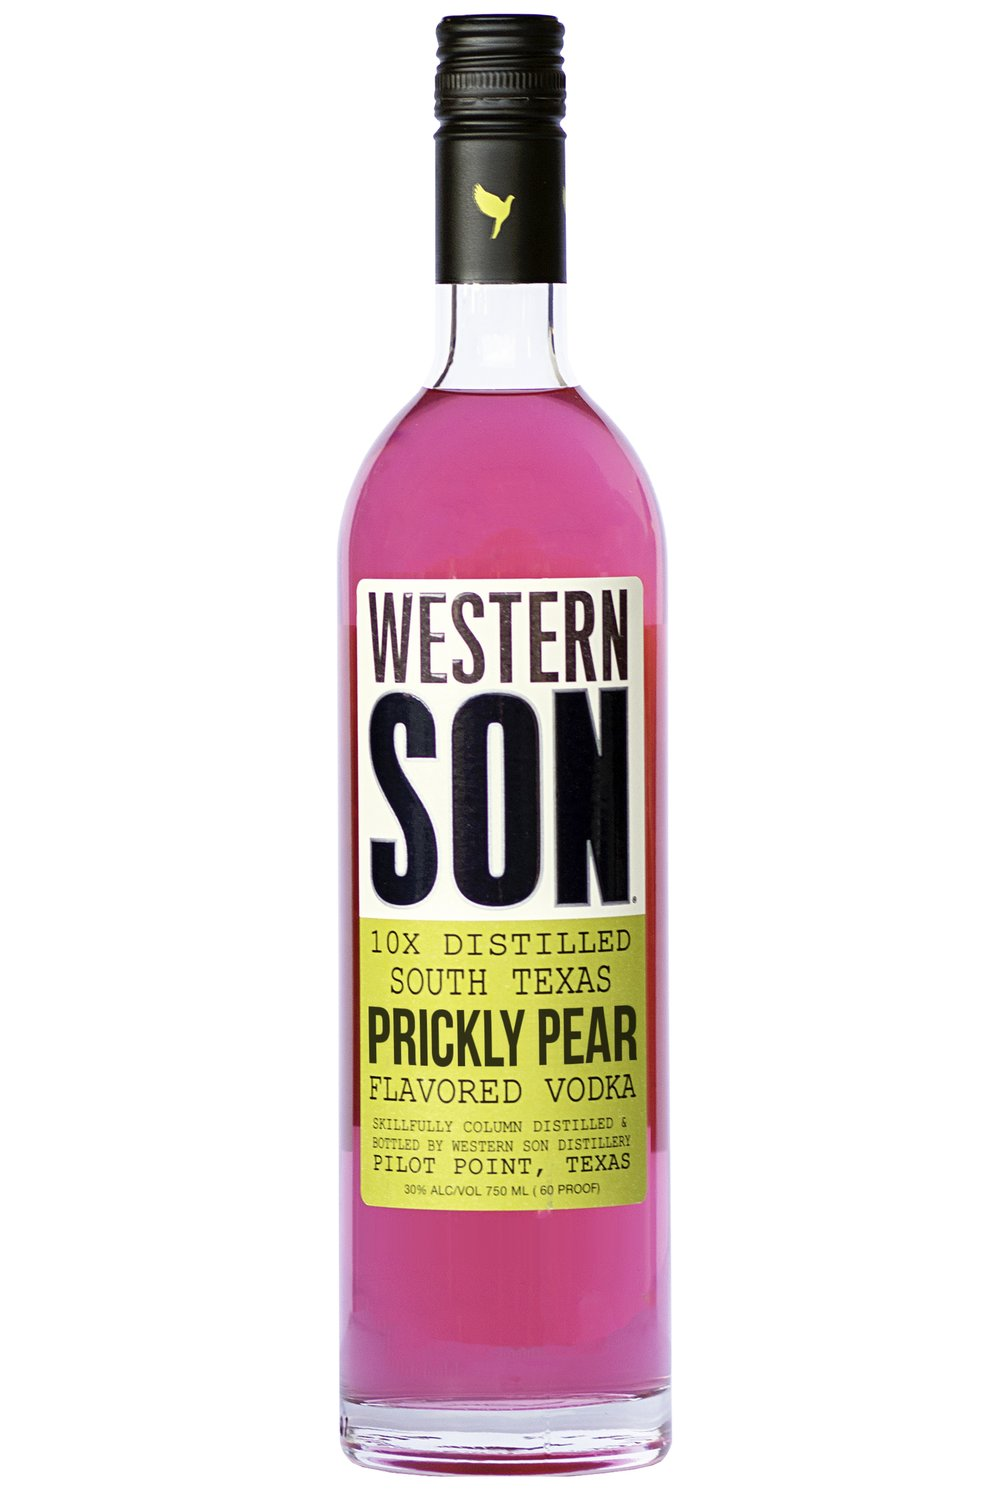 Prickly Pear Margarita1 part Western Son Prickly Pear Vodka1 part silver tequila1 part lime juice1 part simple syrup/agave   Prickly Western Mule 2 part Western Son Prickly Pear Vodka 4 parts ginger beer squeeze of lime -